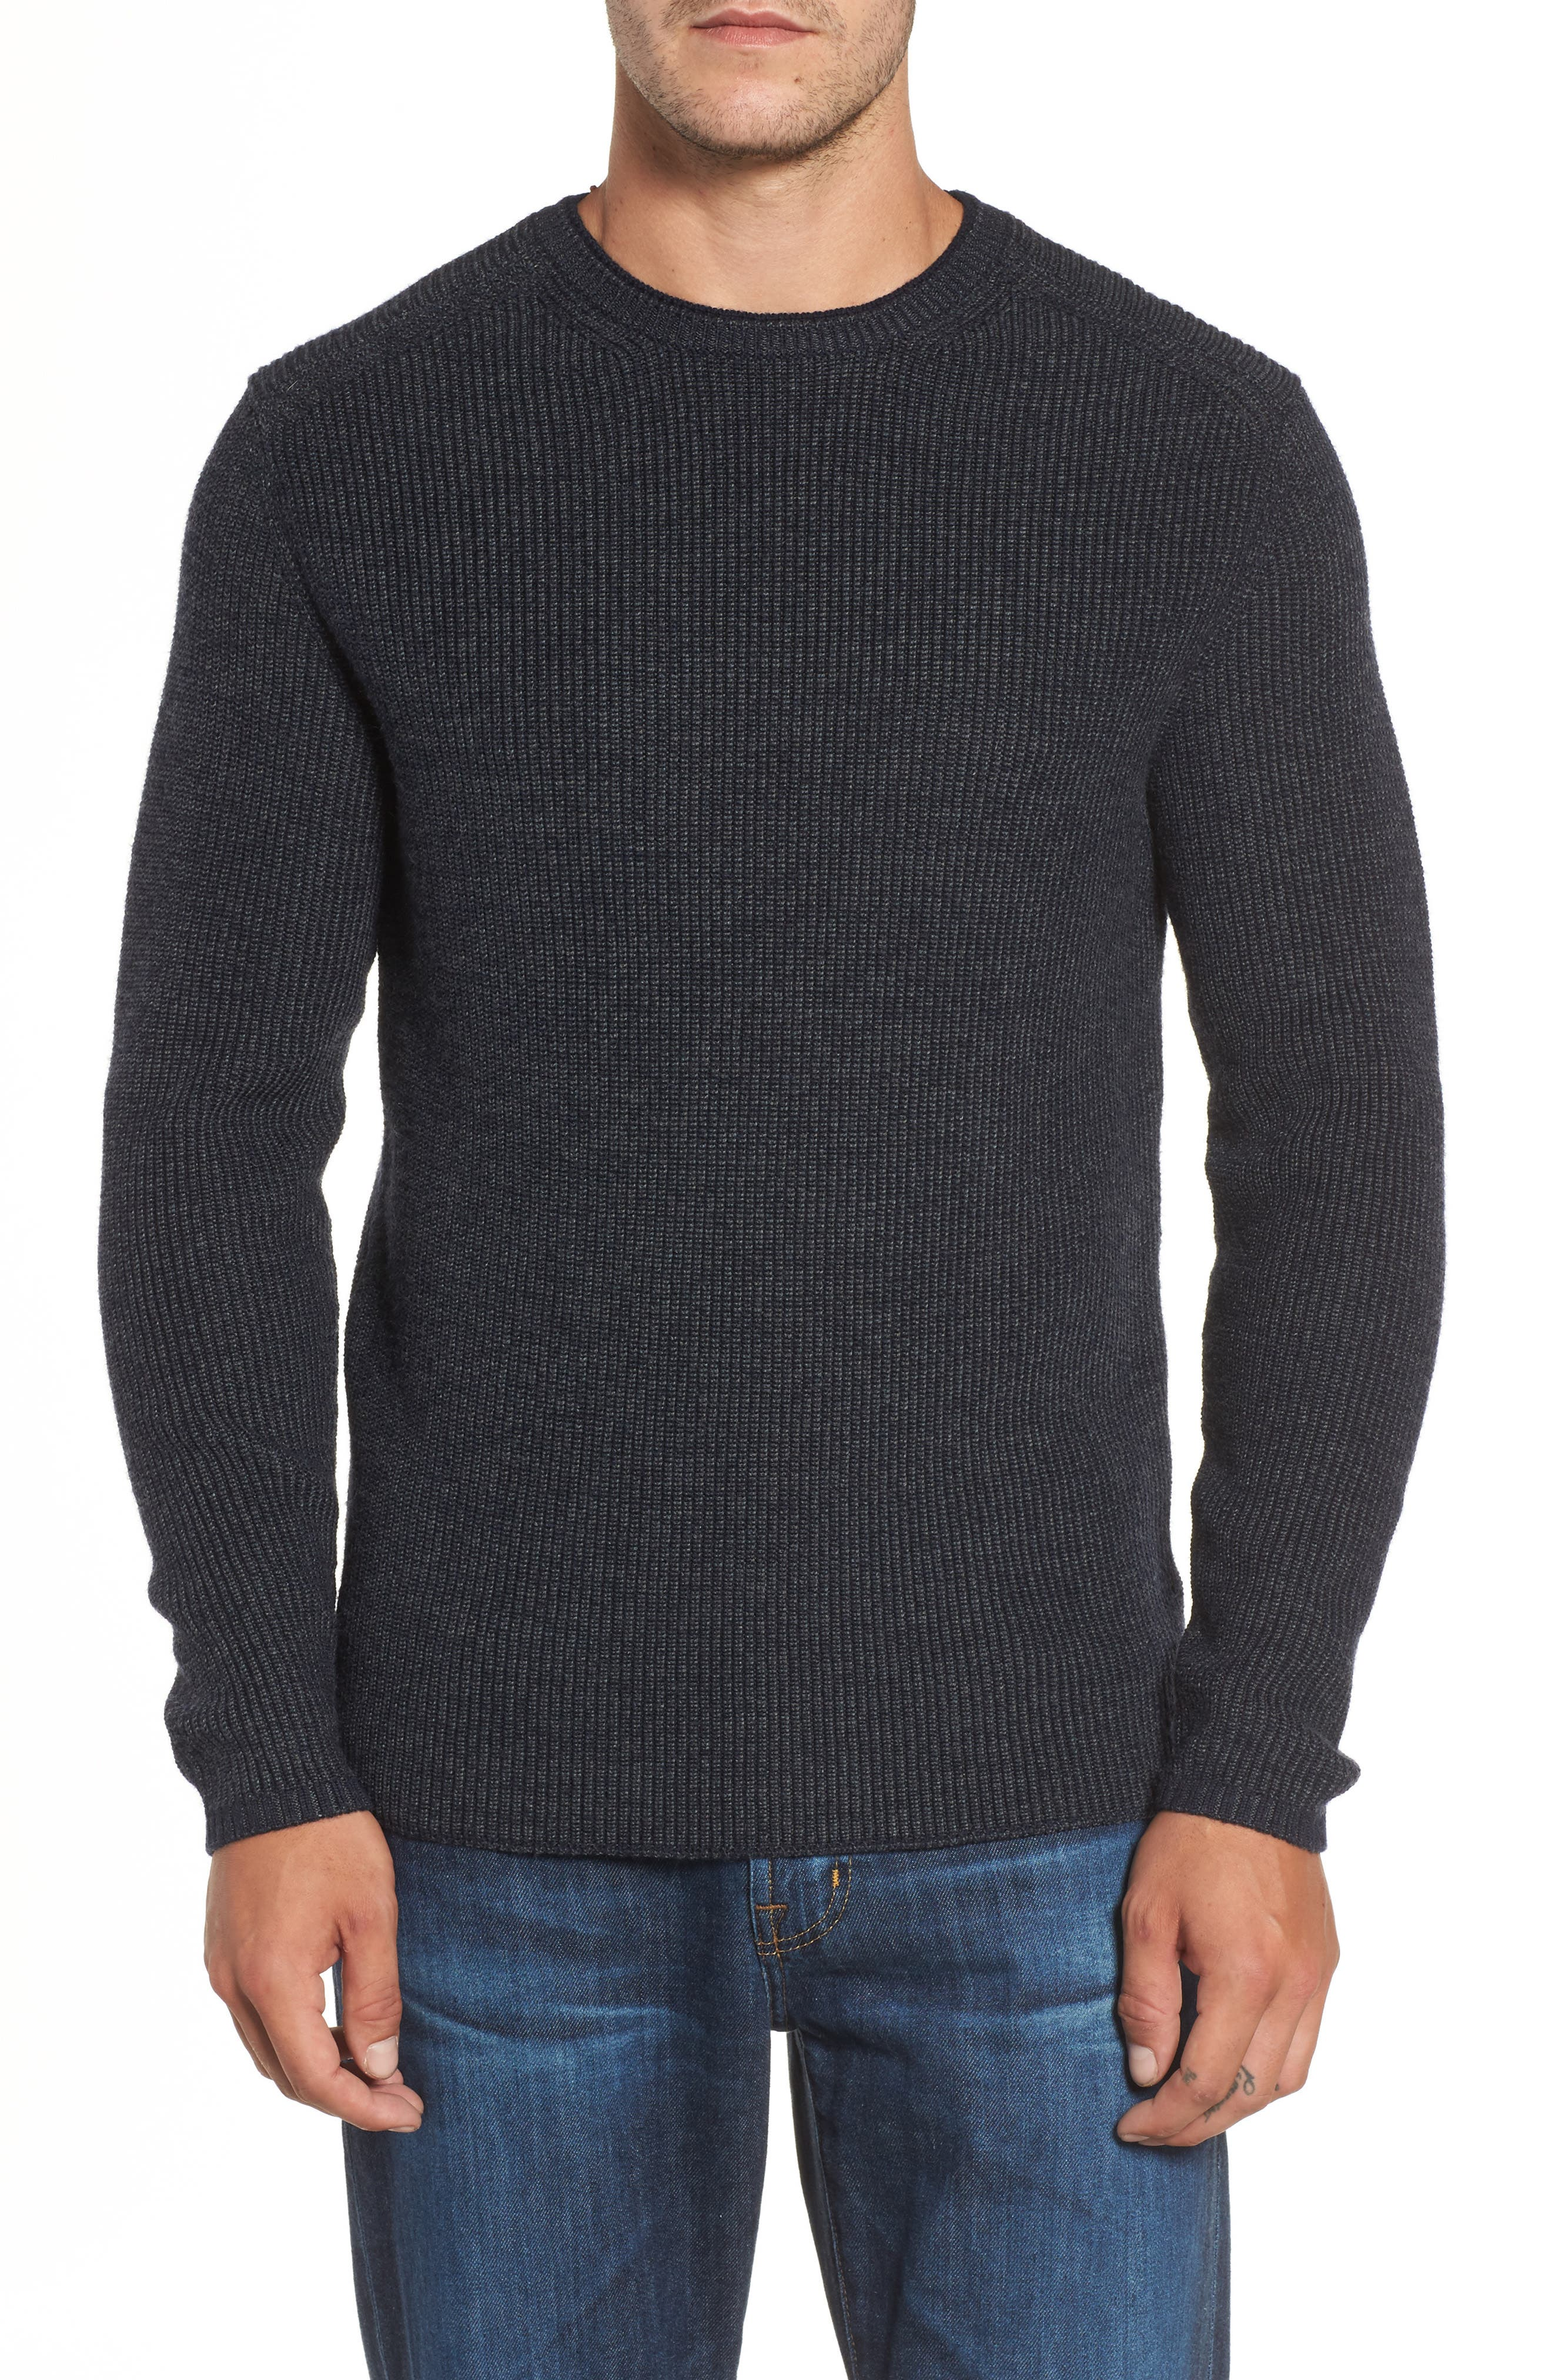 Whalers Bay Ribbed Merino Wool Sweater,                         Main,                         color, 470